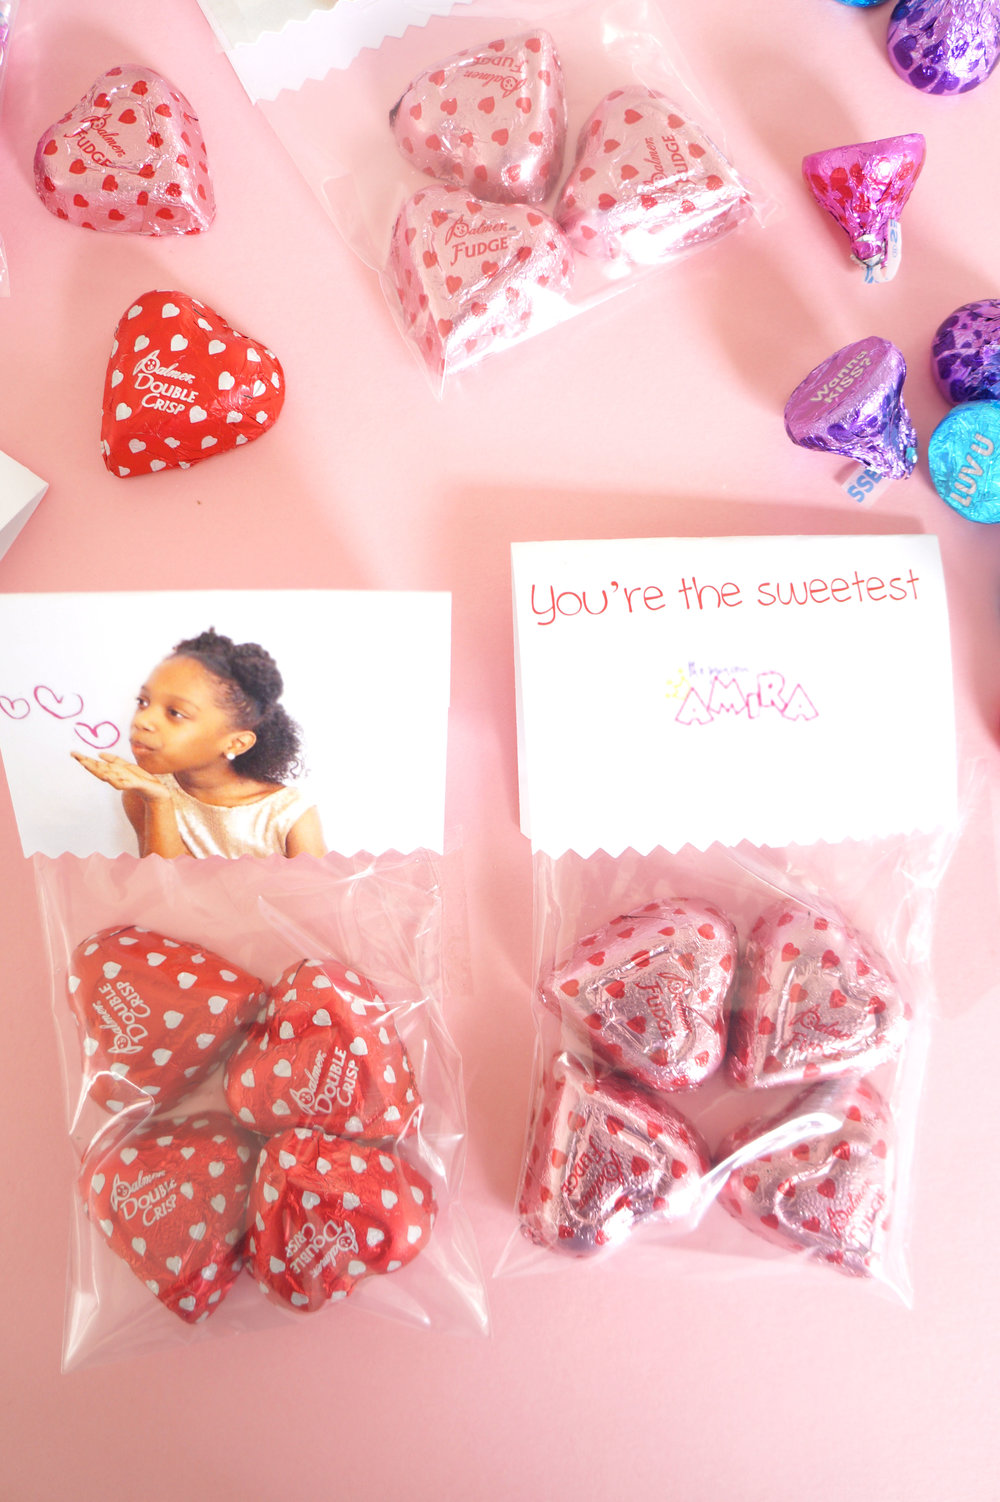 Andrea Fenise Memphis Fashion and ParentIng Blogger shares DIY Candy Bag craft